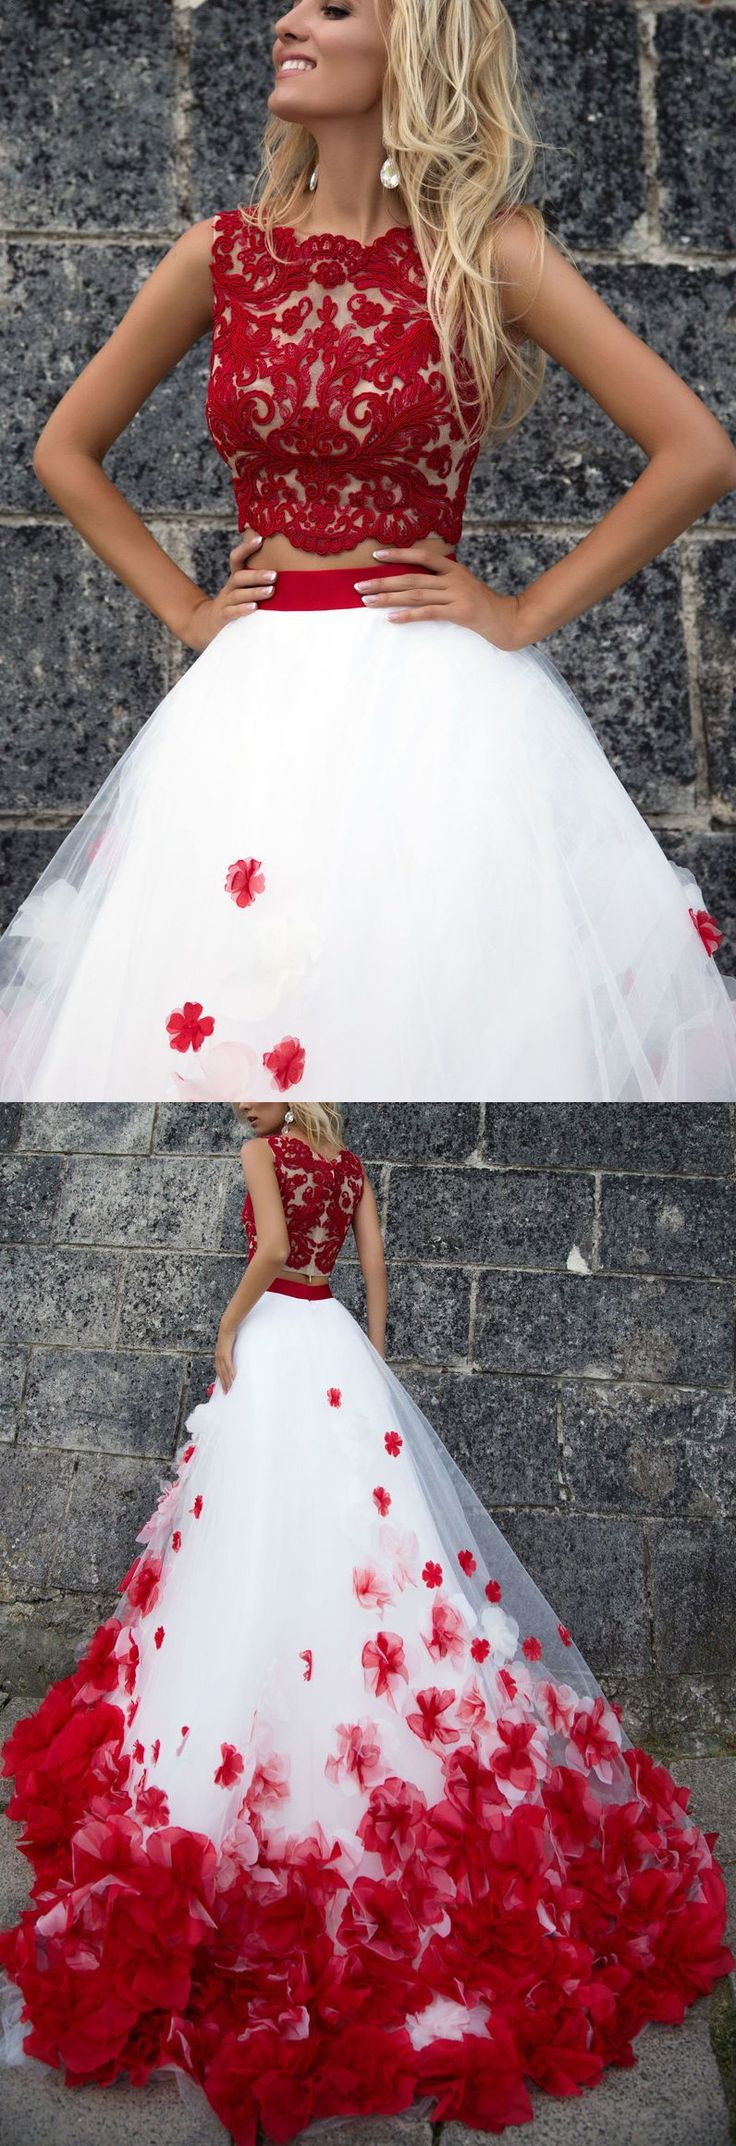 Red and white wedding dresses from paris